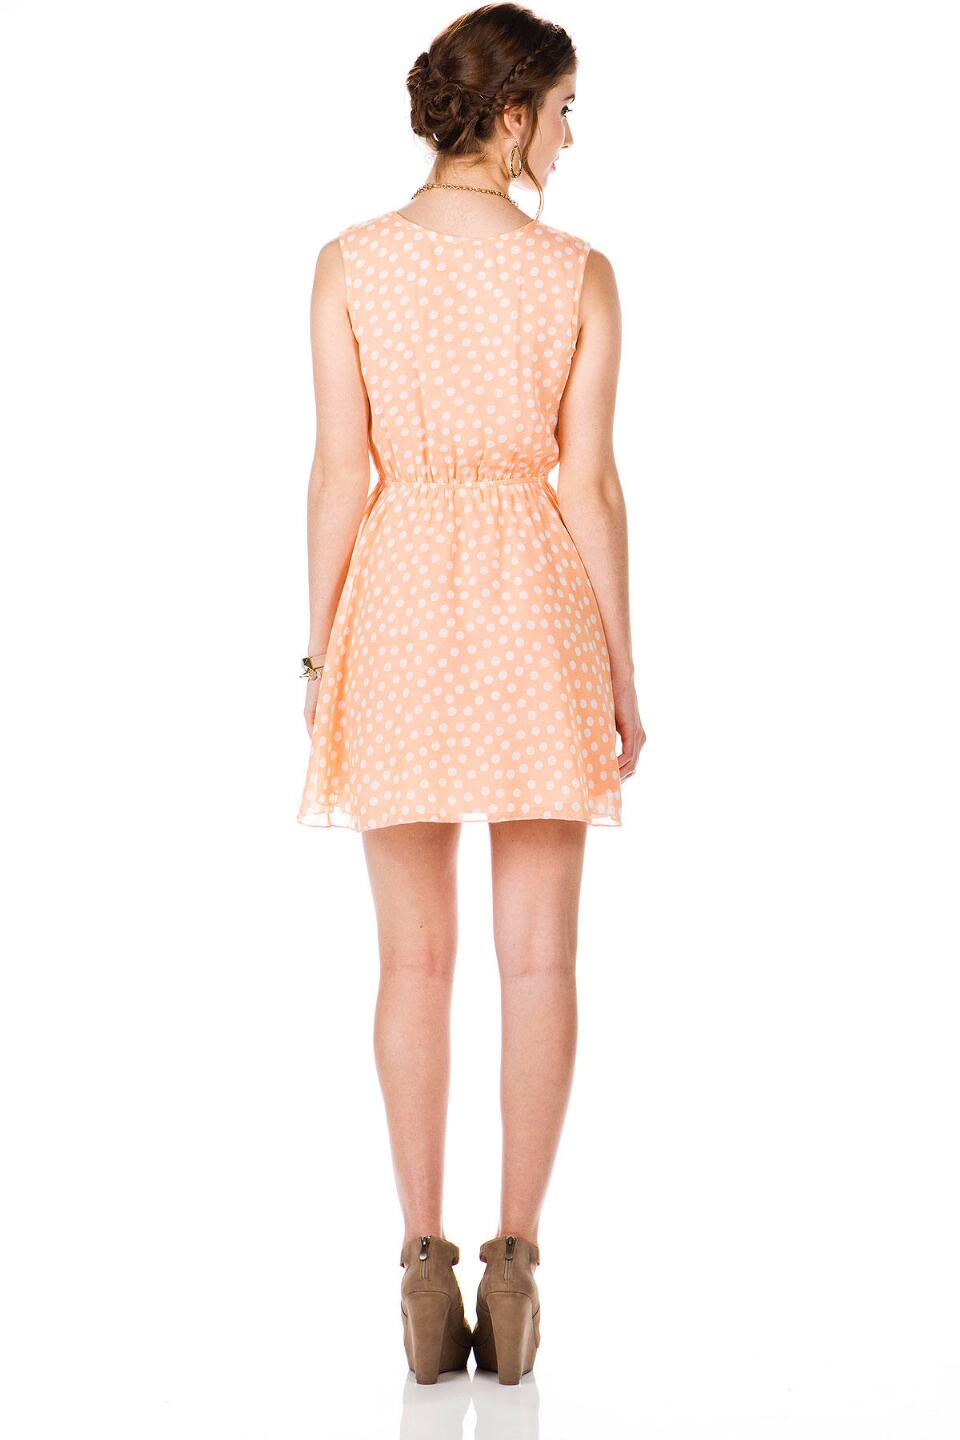 Atlanta Polka Dot Dress-  peac-clback